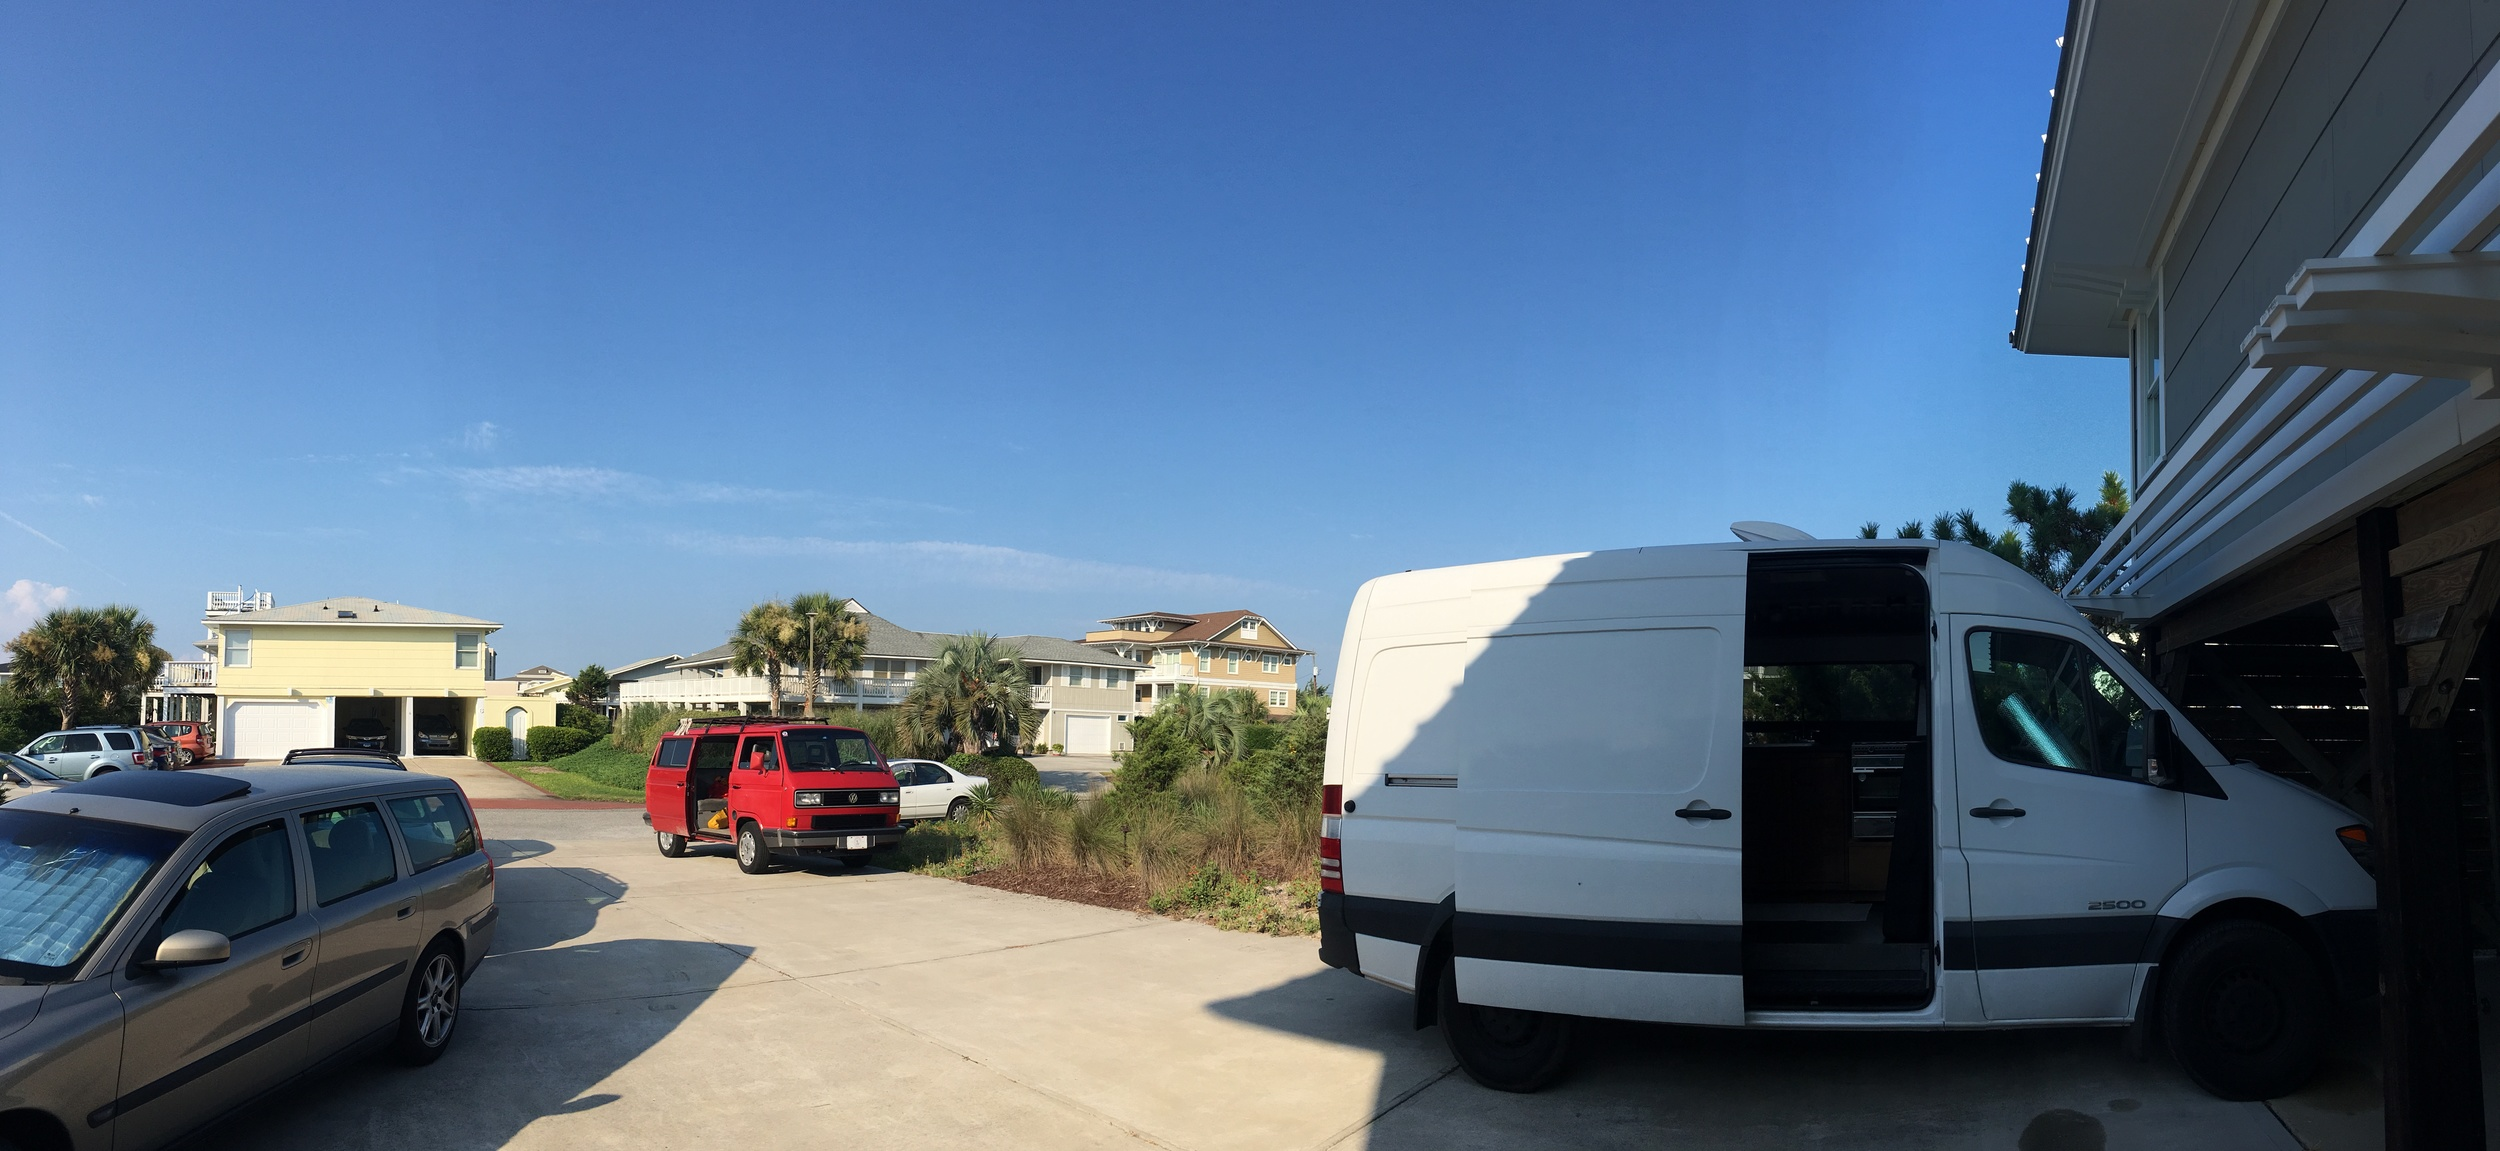 Camping out in the driveway at the beach